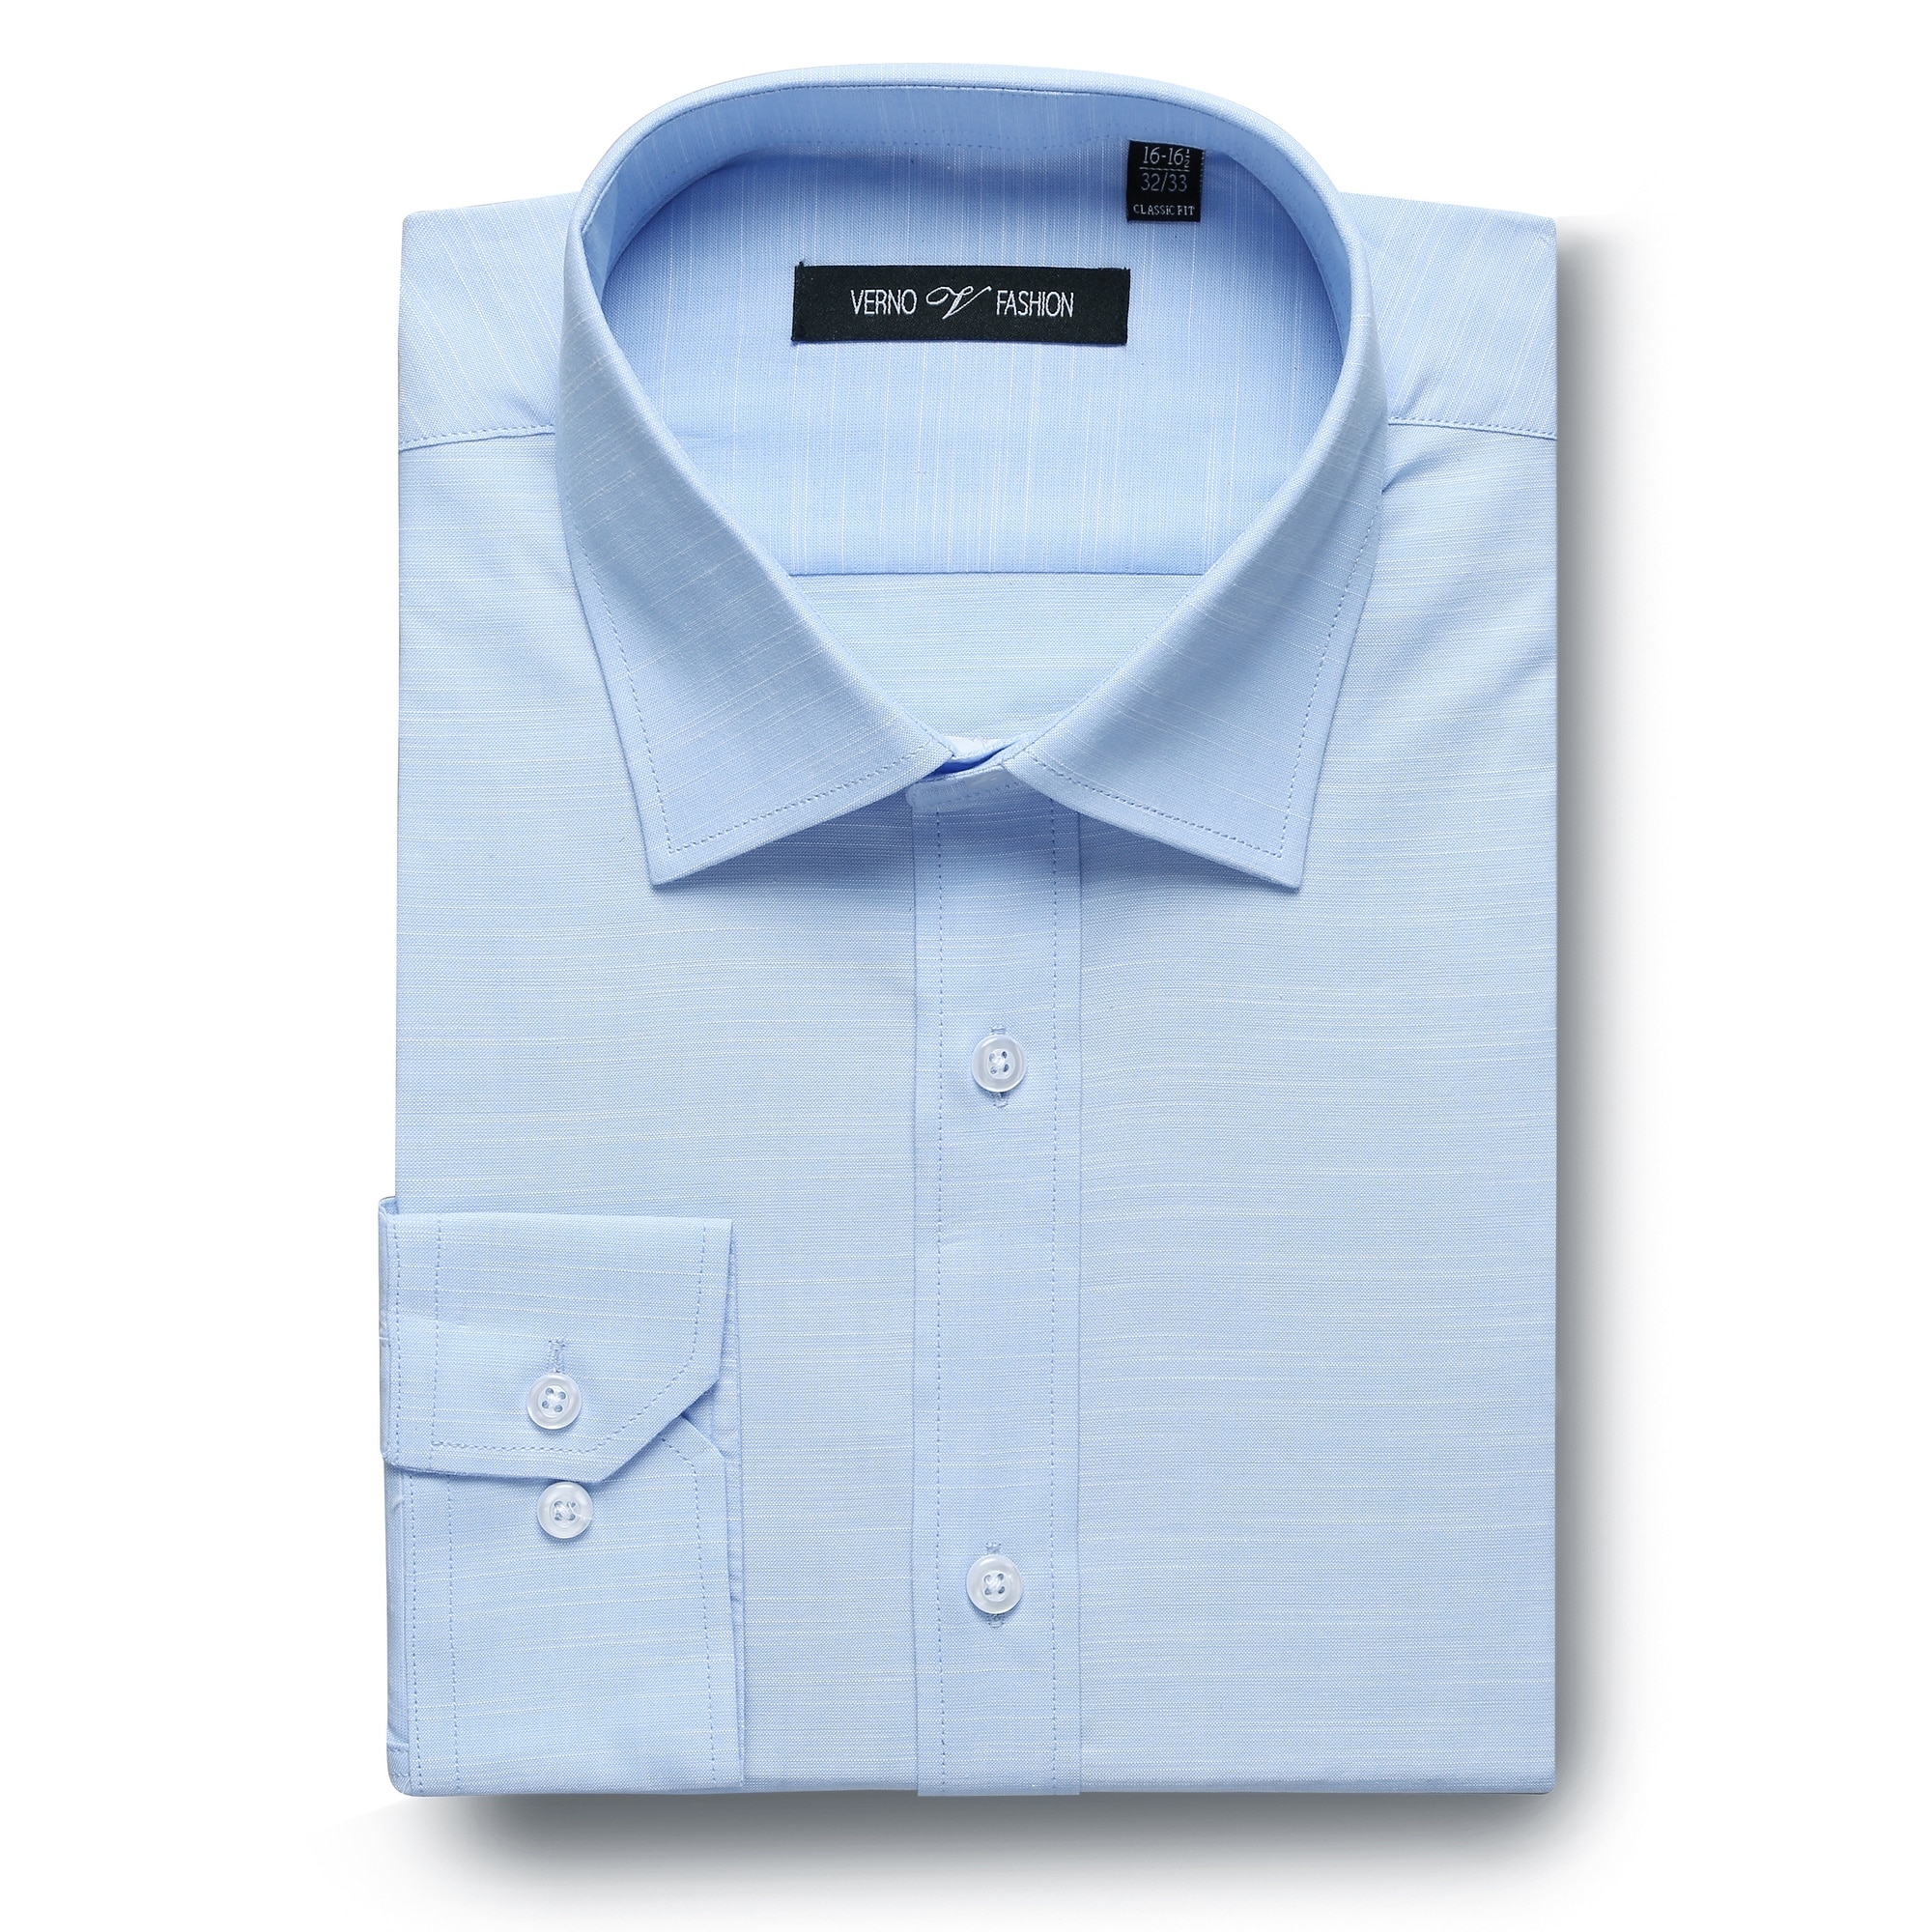 Buttoned Down mens standard Non-Iron Classic Fit French Cuff Spread Collar Dress Shirt